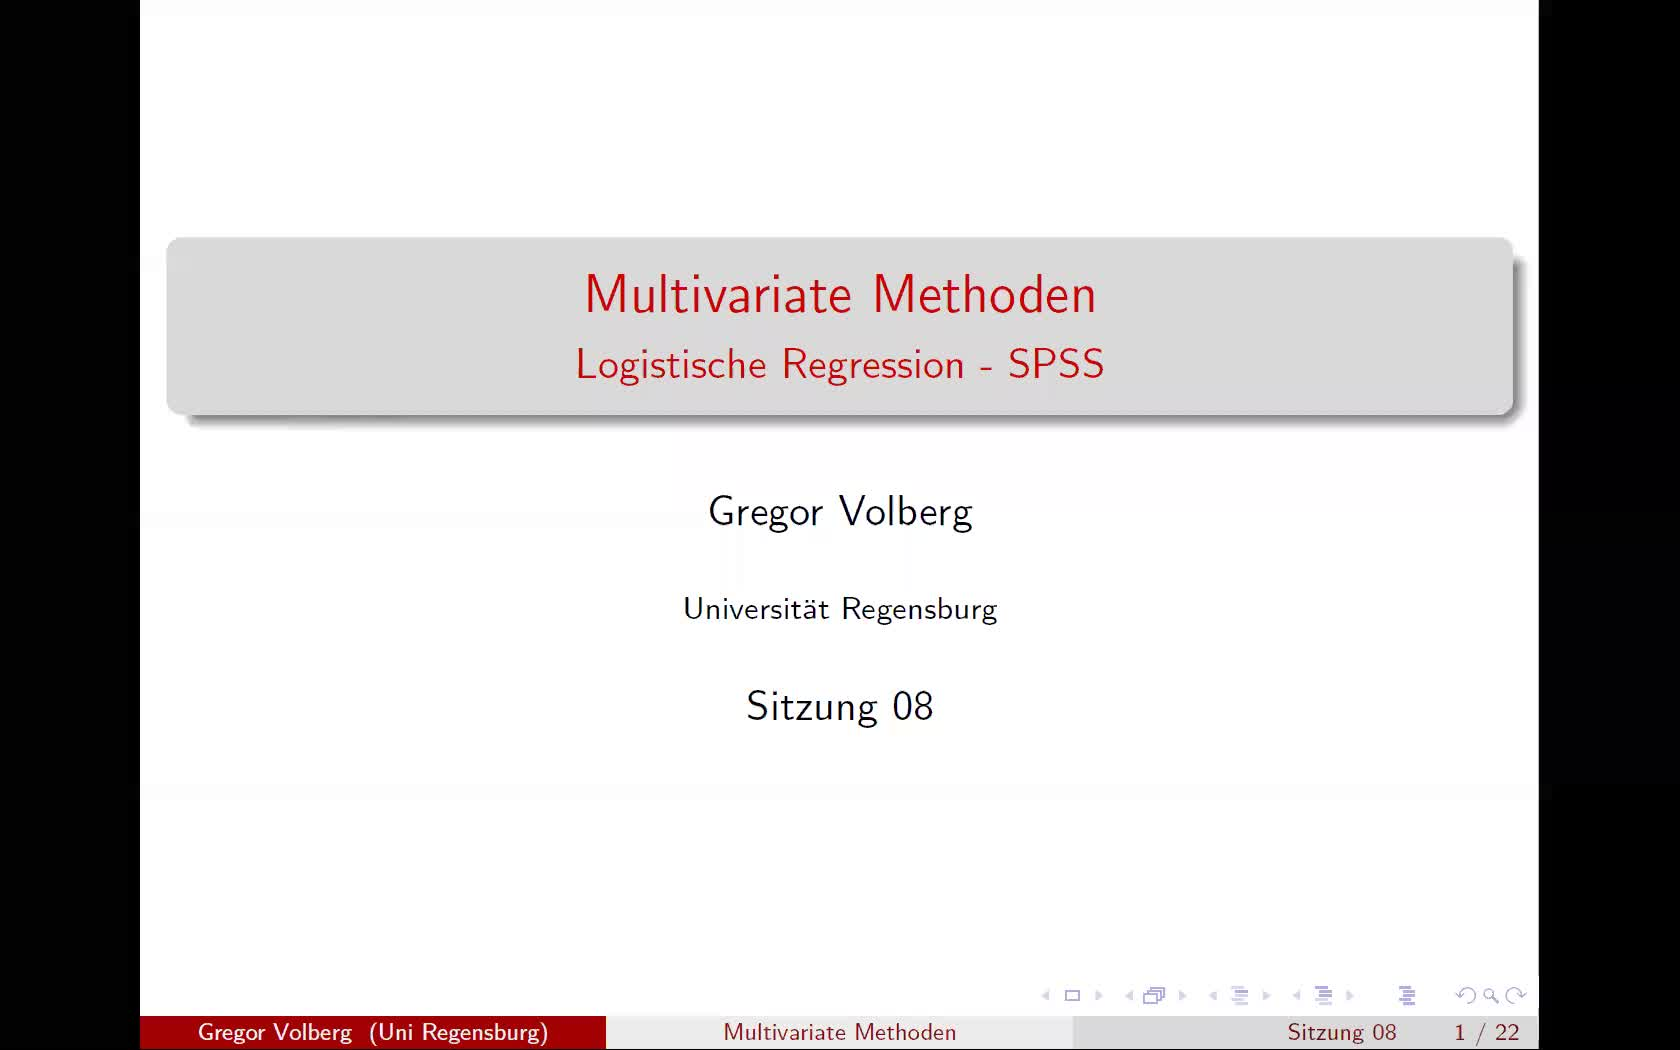 Logistische Regression - SPSS